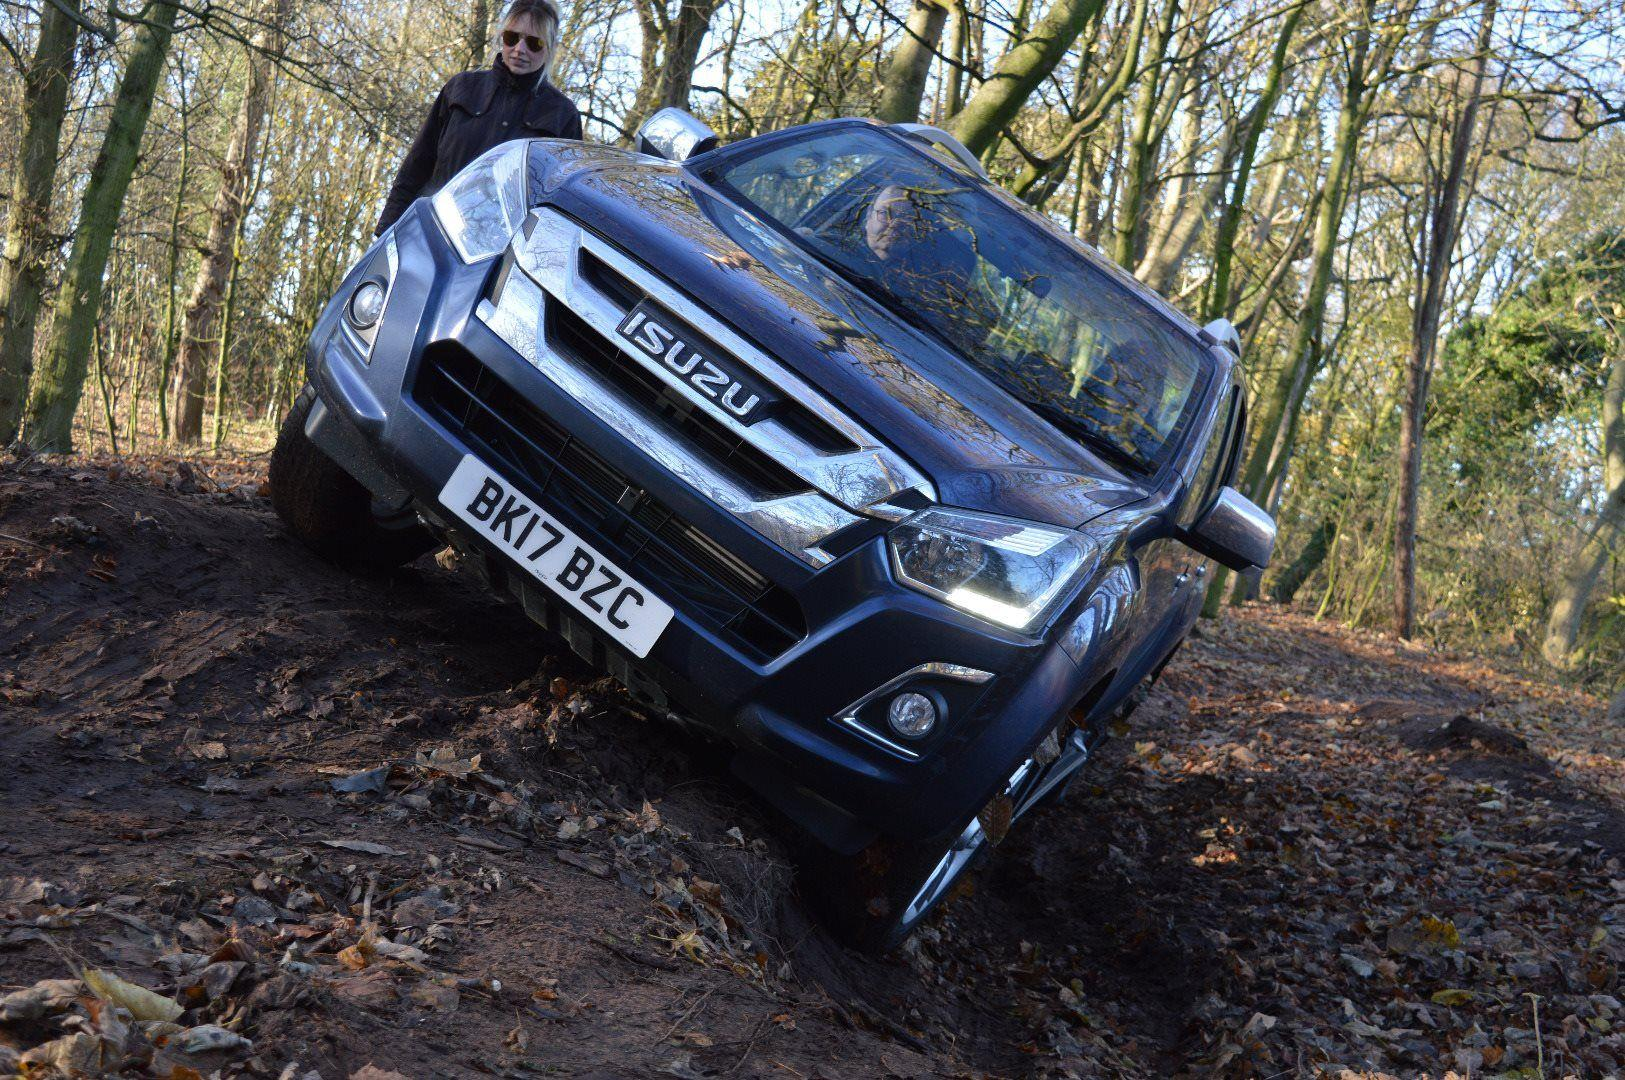 ISUZU D-MAX TRIUMPHS AT THE PROFESSIONAL PICKUP & 4X4 AWARDS